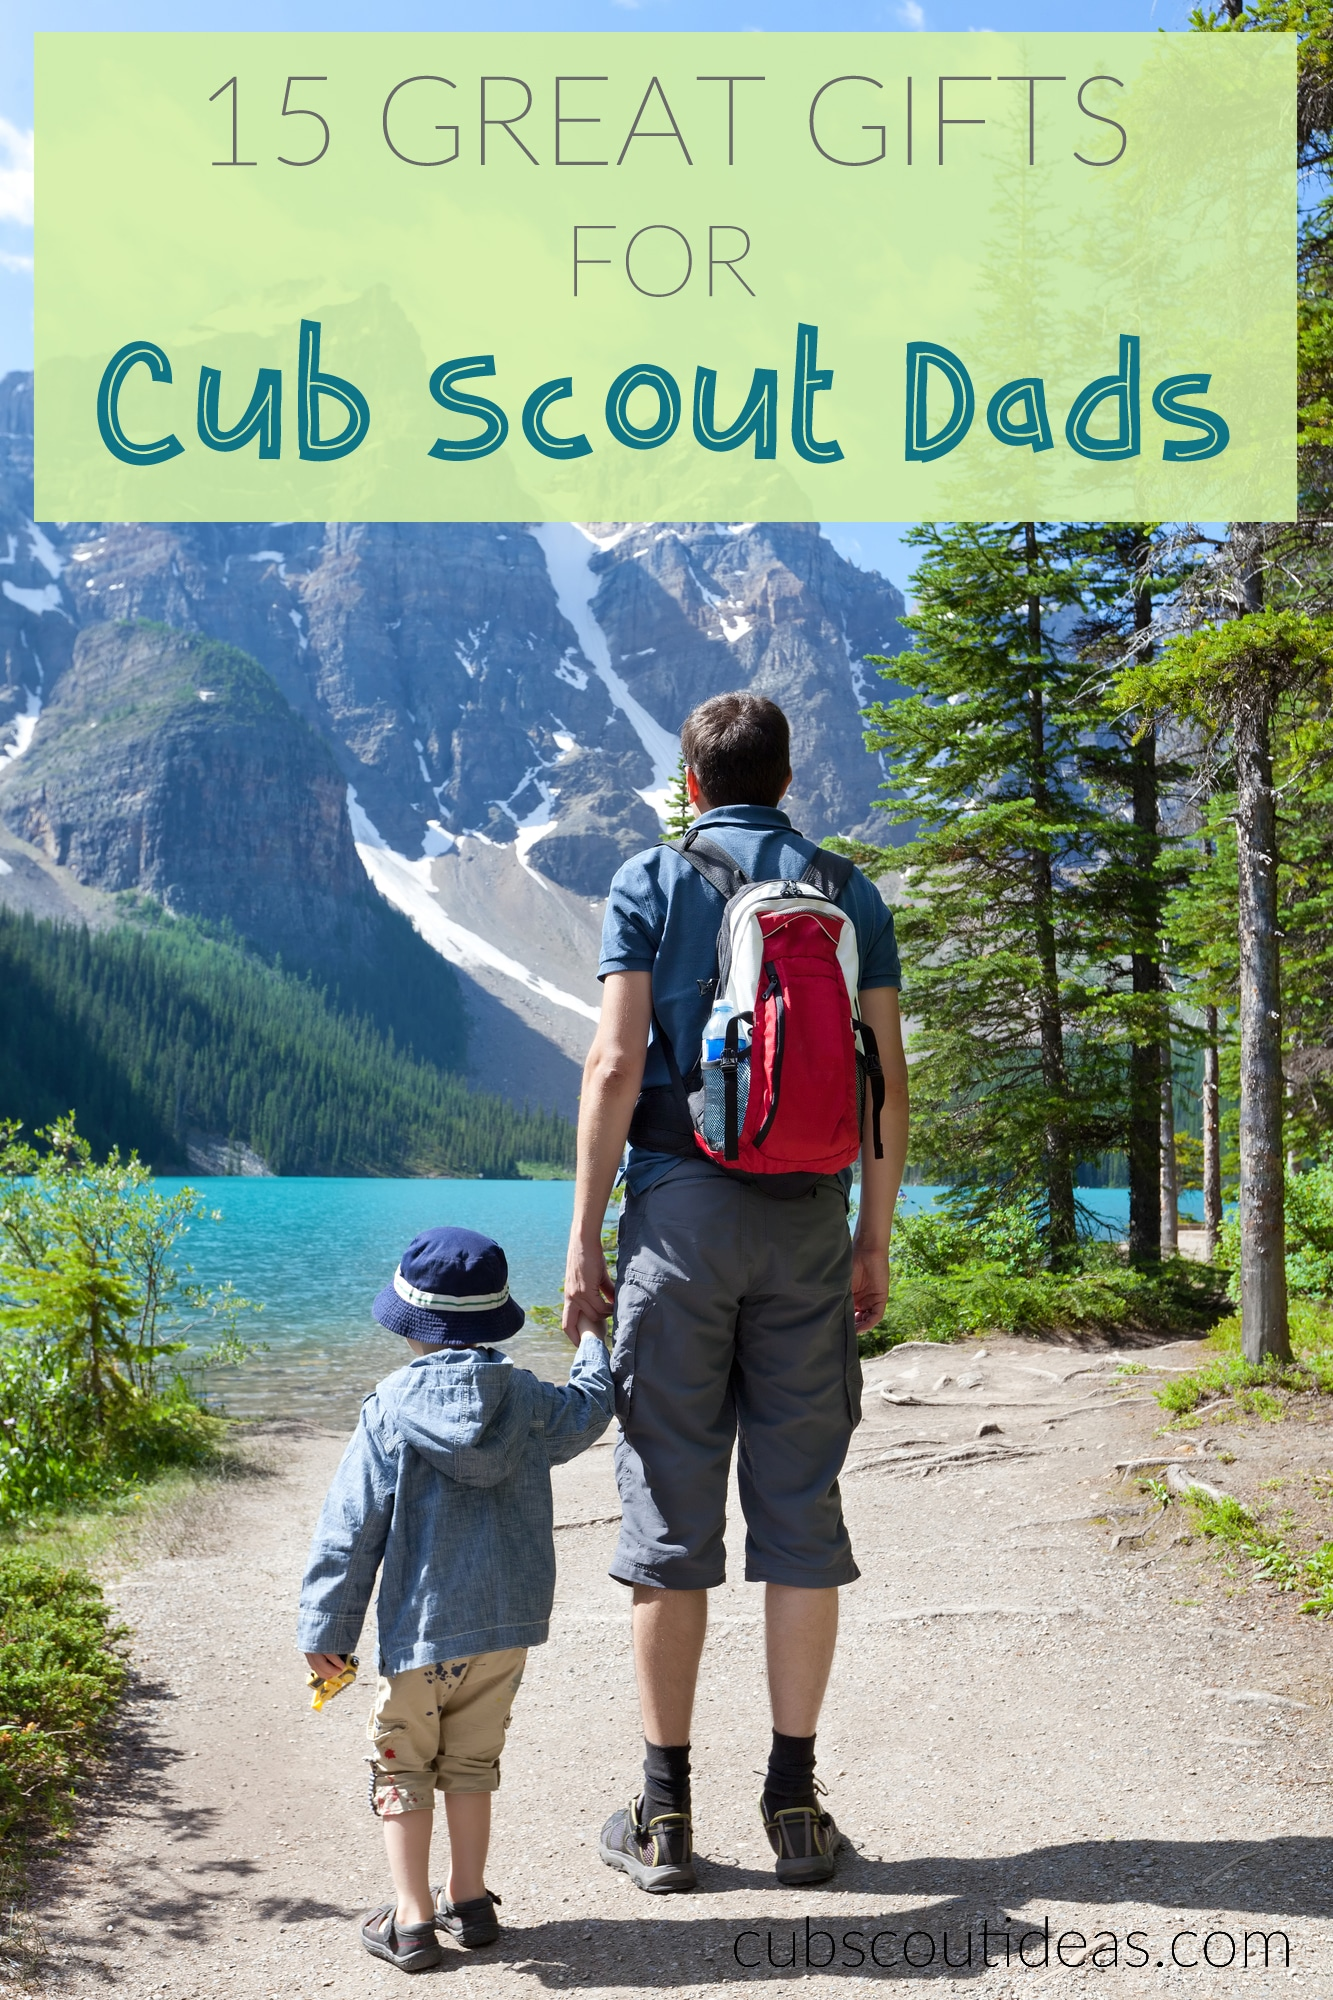 cub scout dad gifts